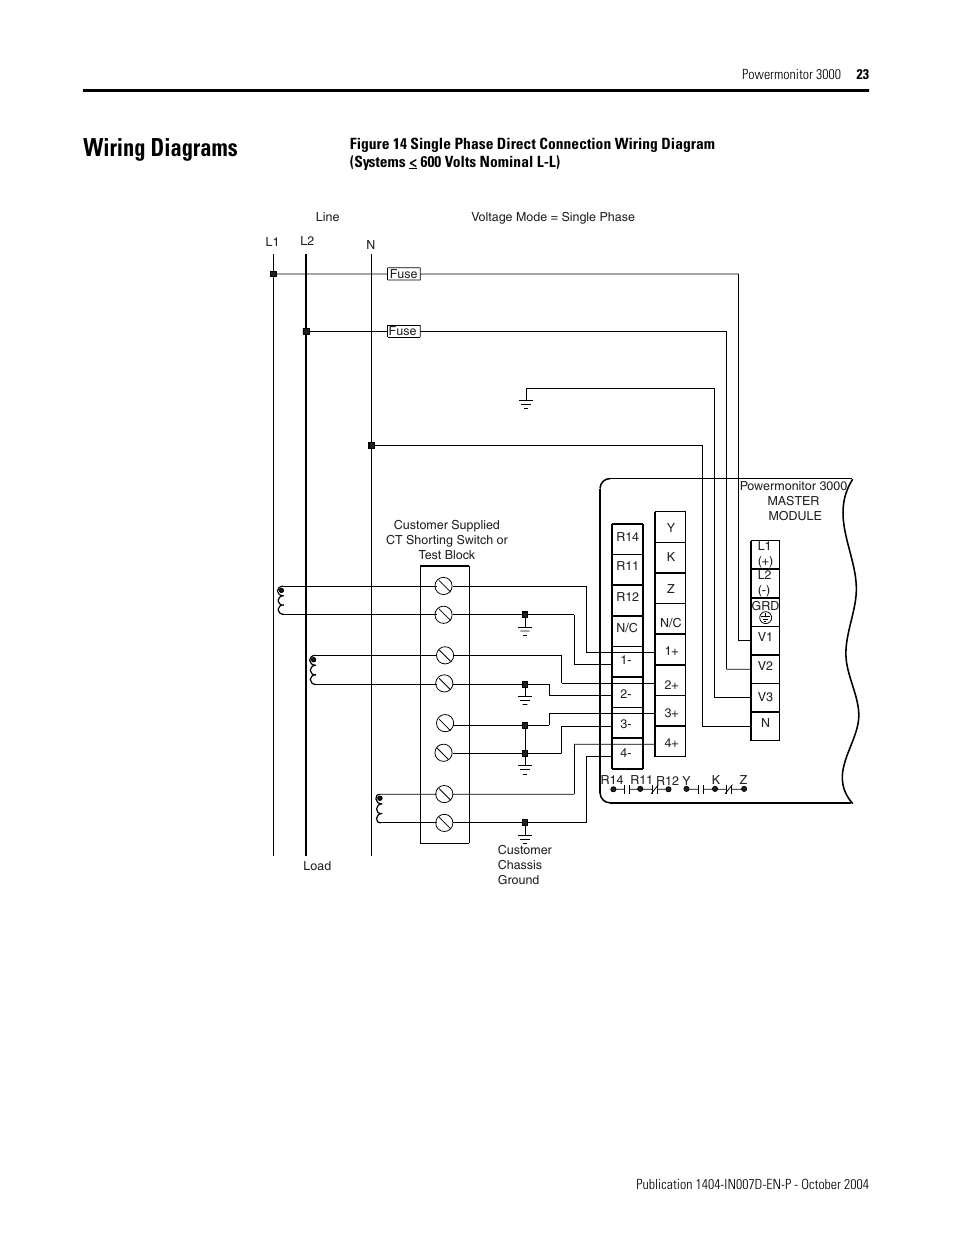 medium resolution of wiring diagrams rockwell automation 1404 m4 m5 m6 m8 powermonitor 3000 installation instructions prior to firmware rev 3 0 user manual page 23 66